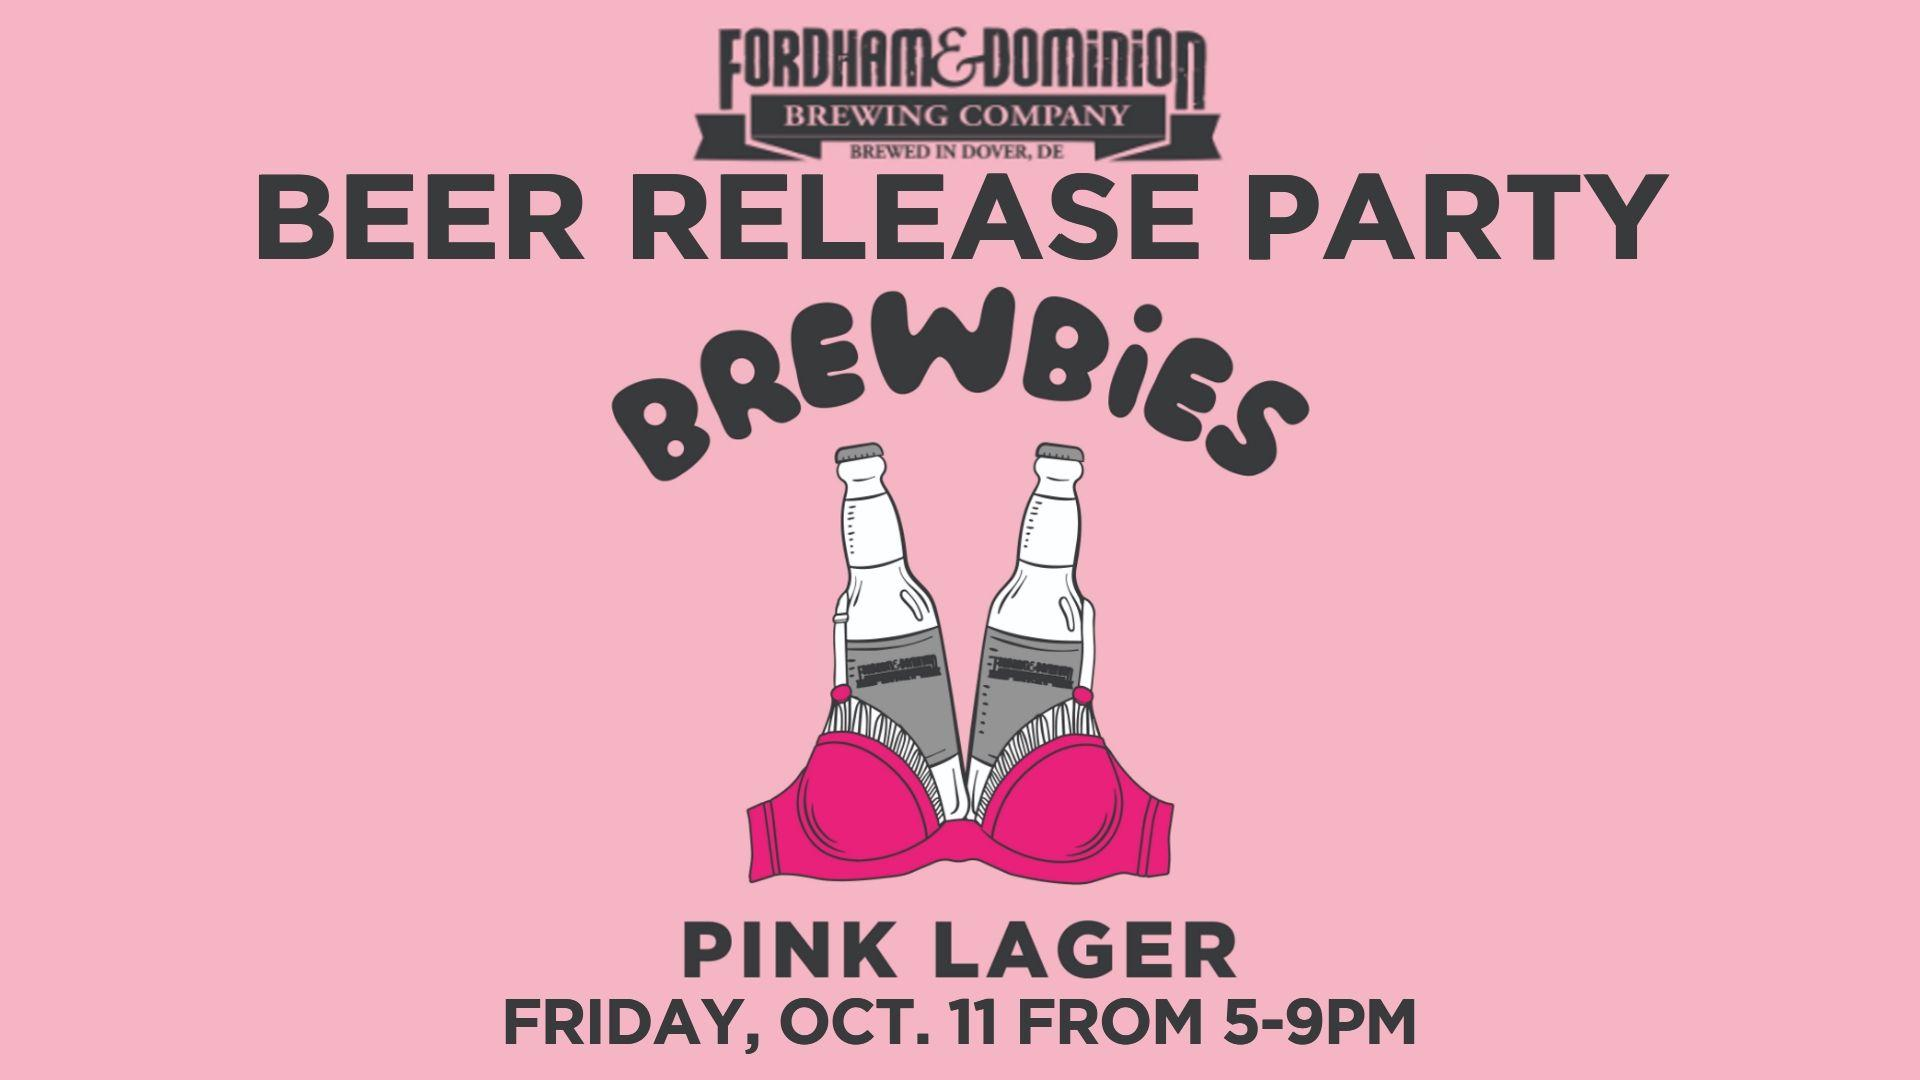 Brewbies Pink Lager Beer Release Party at Fordham & Dominion Brewing Co.